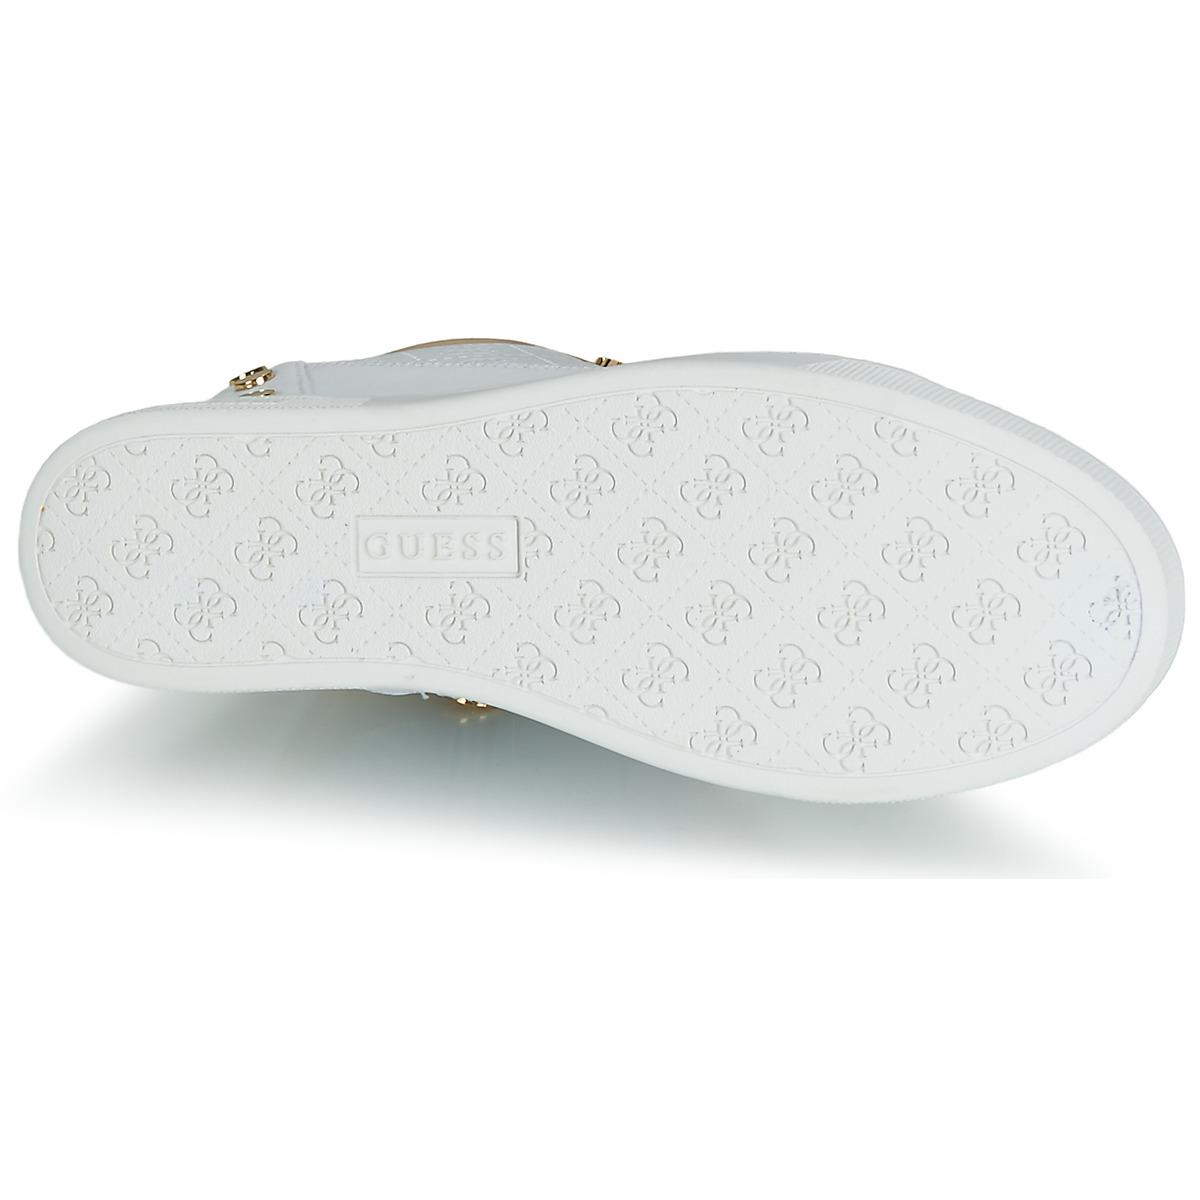 fe69d8d1fb9cd Guess Finly Women s Shoes (high-top Trainers) In White in White - Lyst